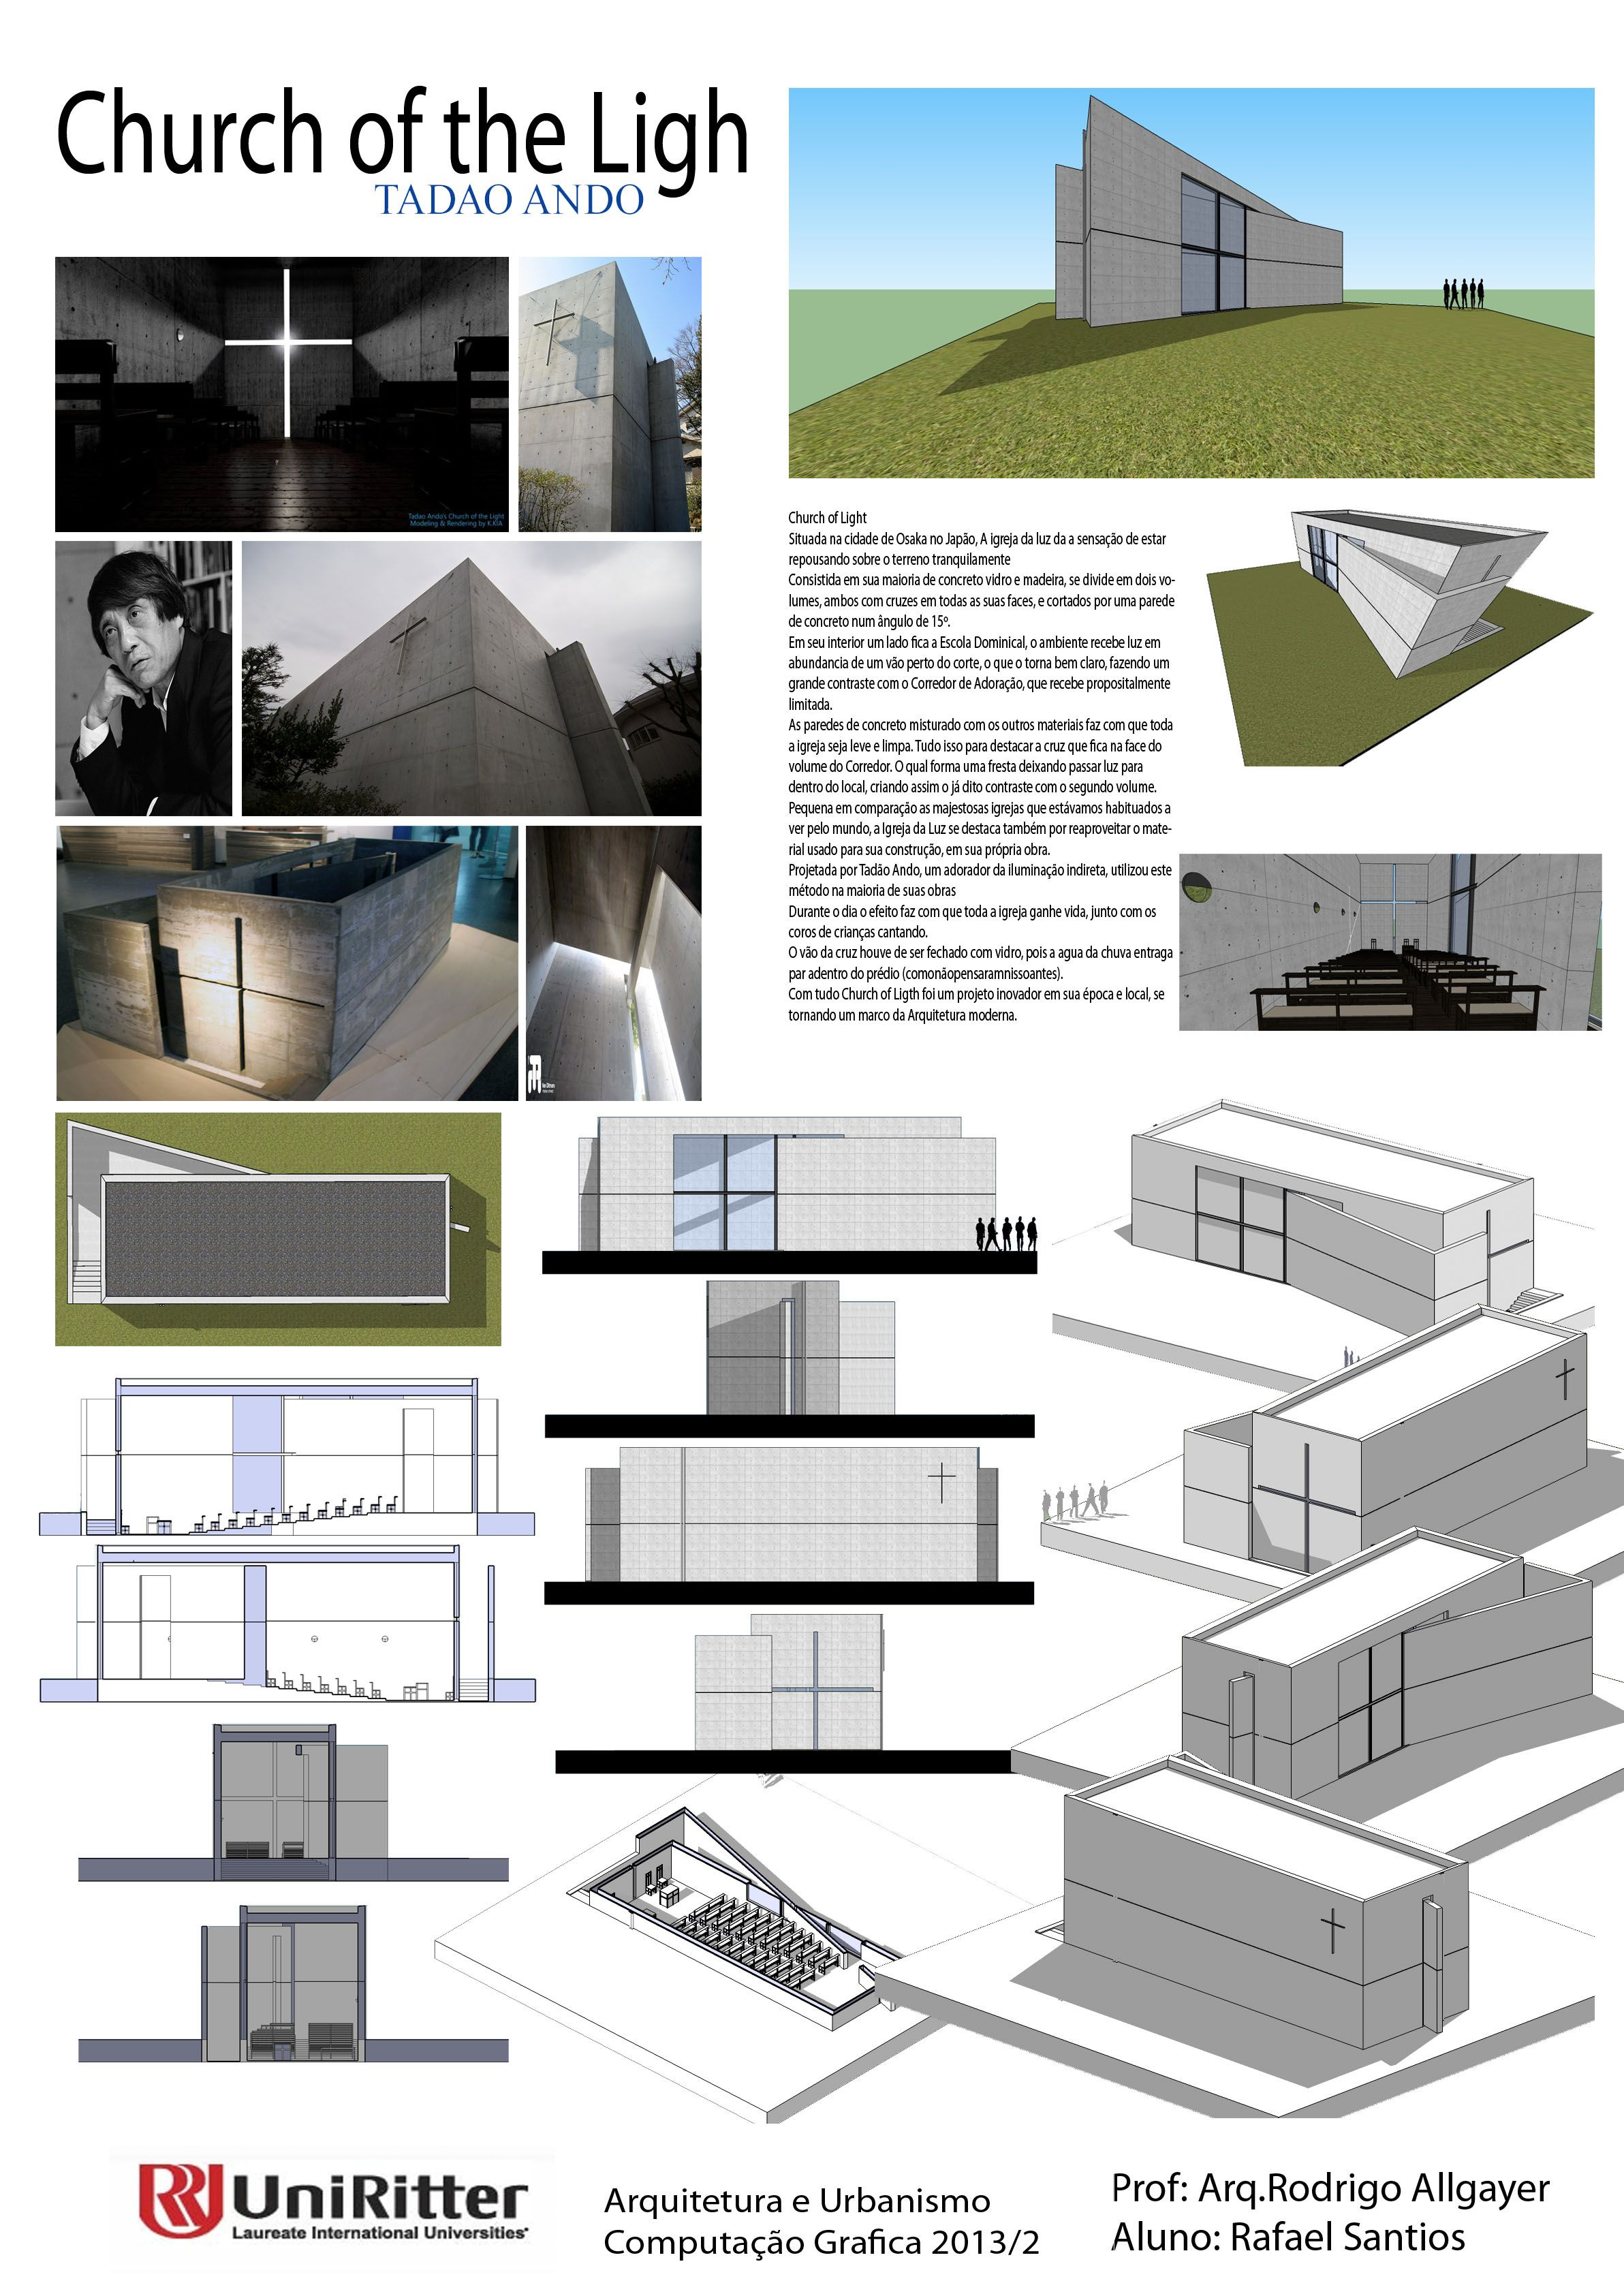 Ando tadao rokko house pinterest - Church Of The Light Tadao Ando